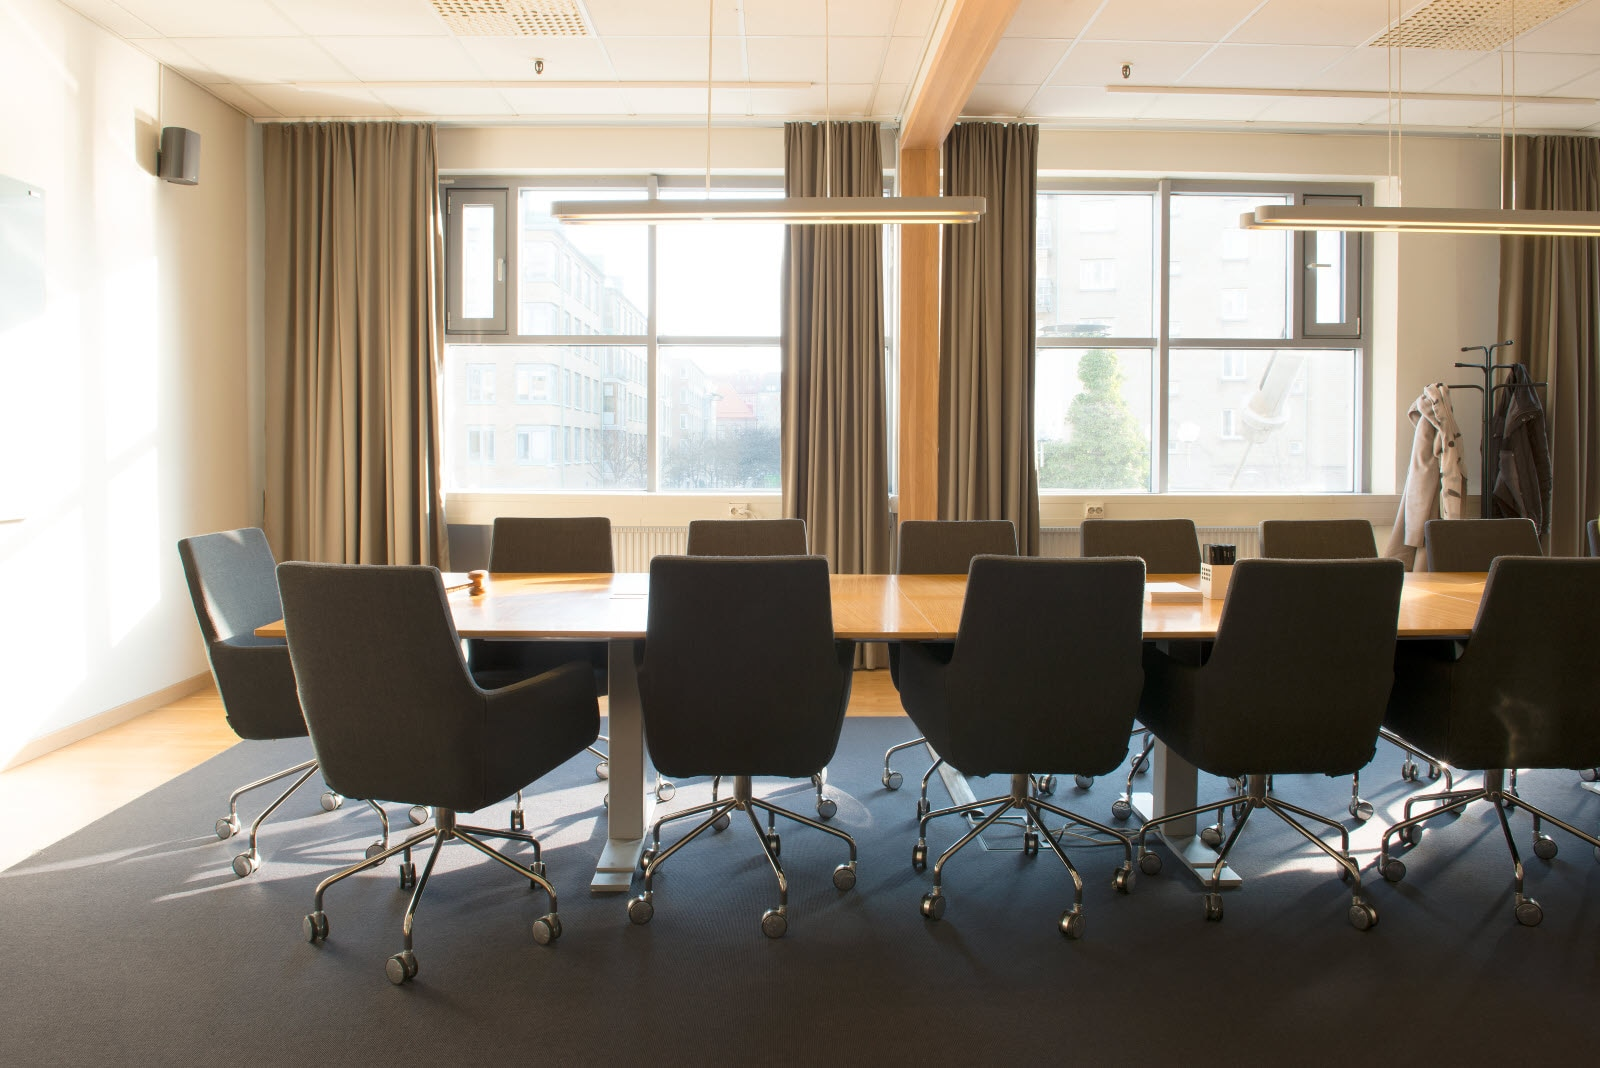 Scandic-Crown-Conference-Room-Styrelserum.jpg